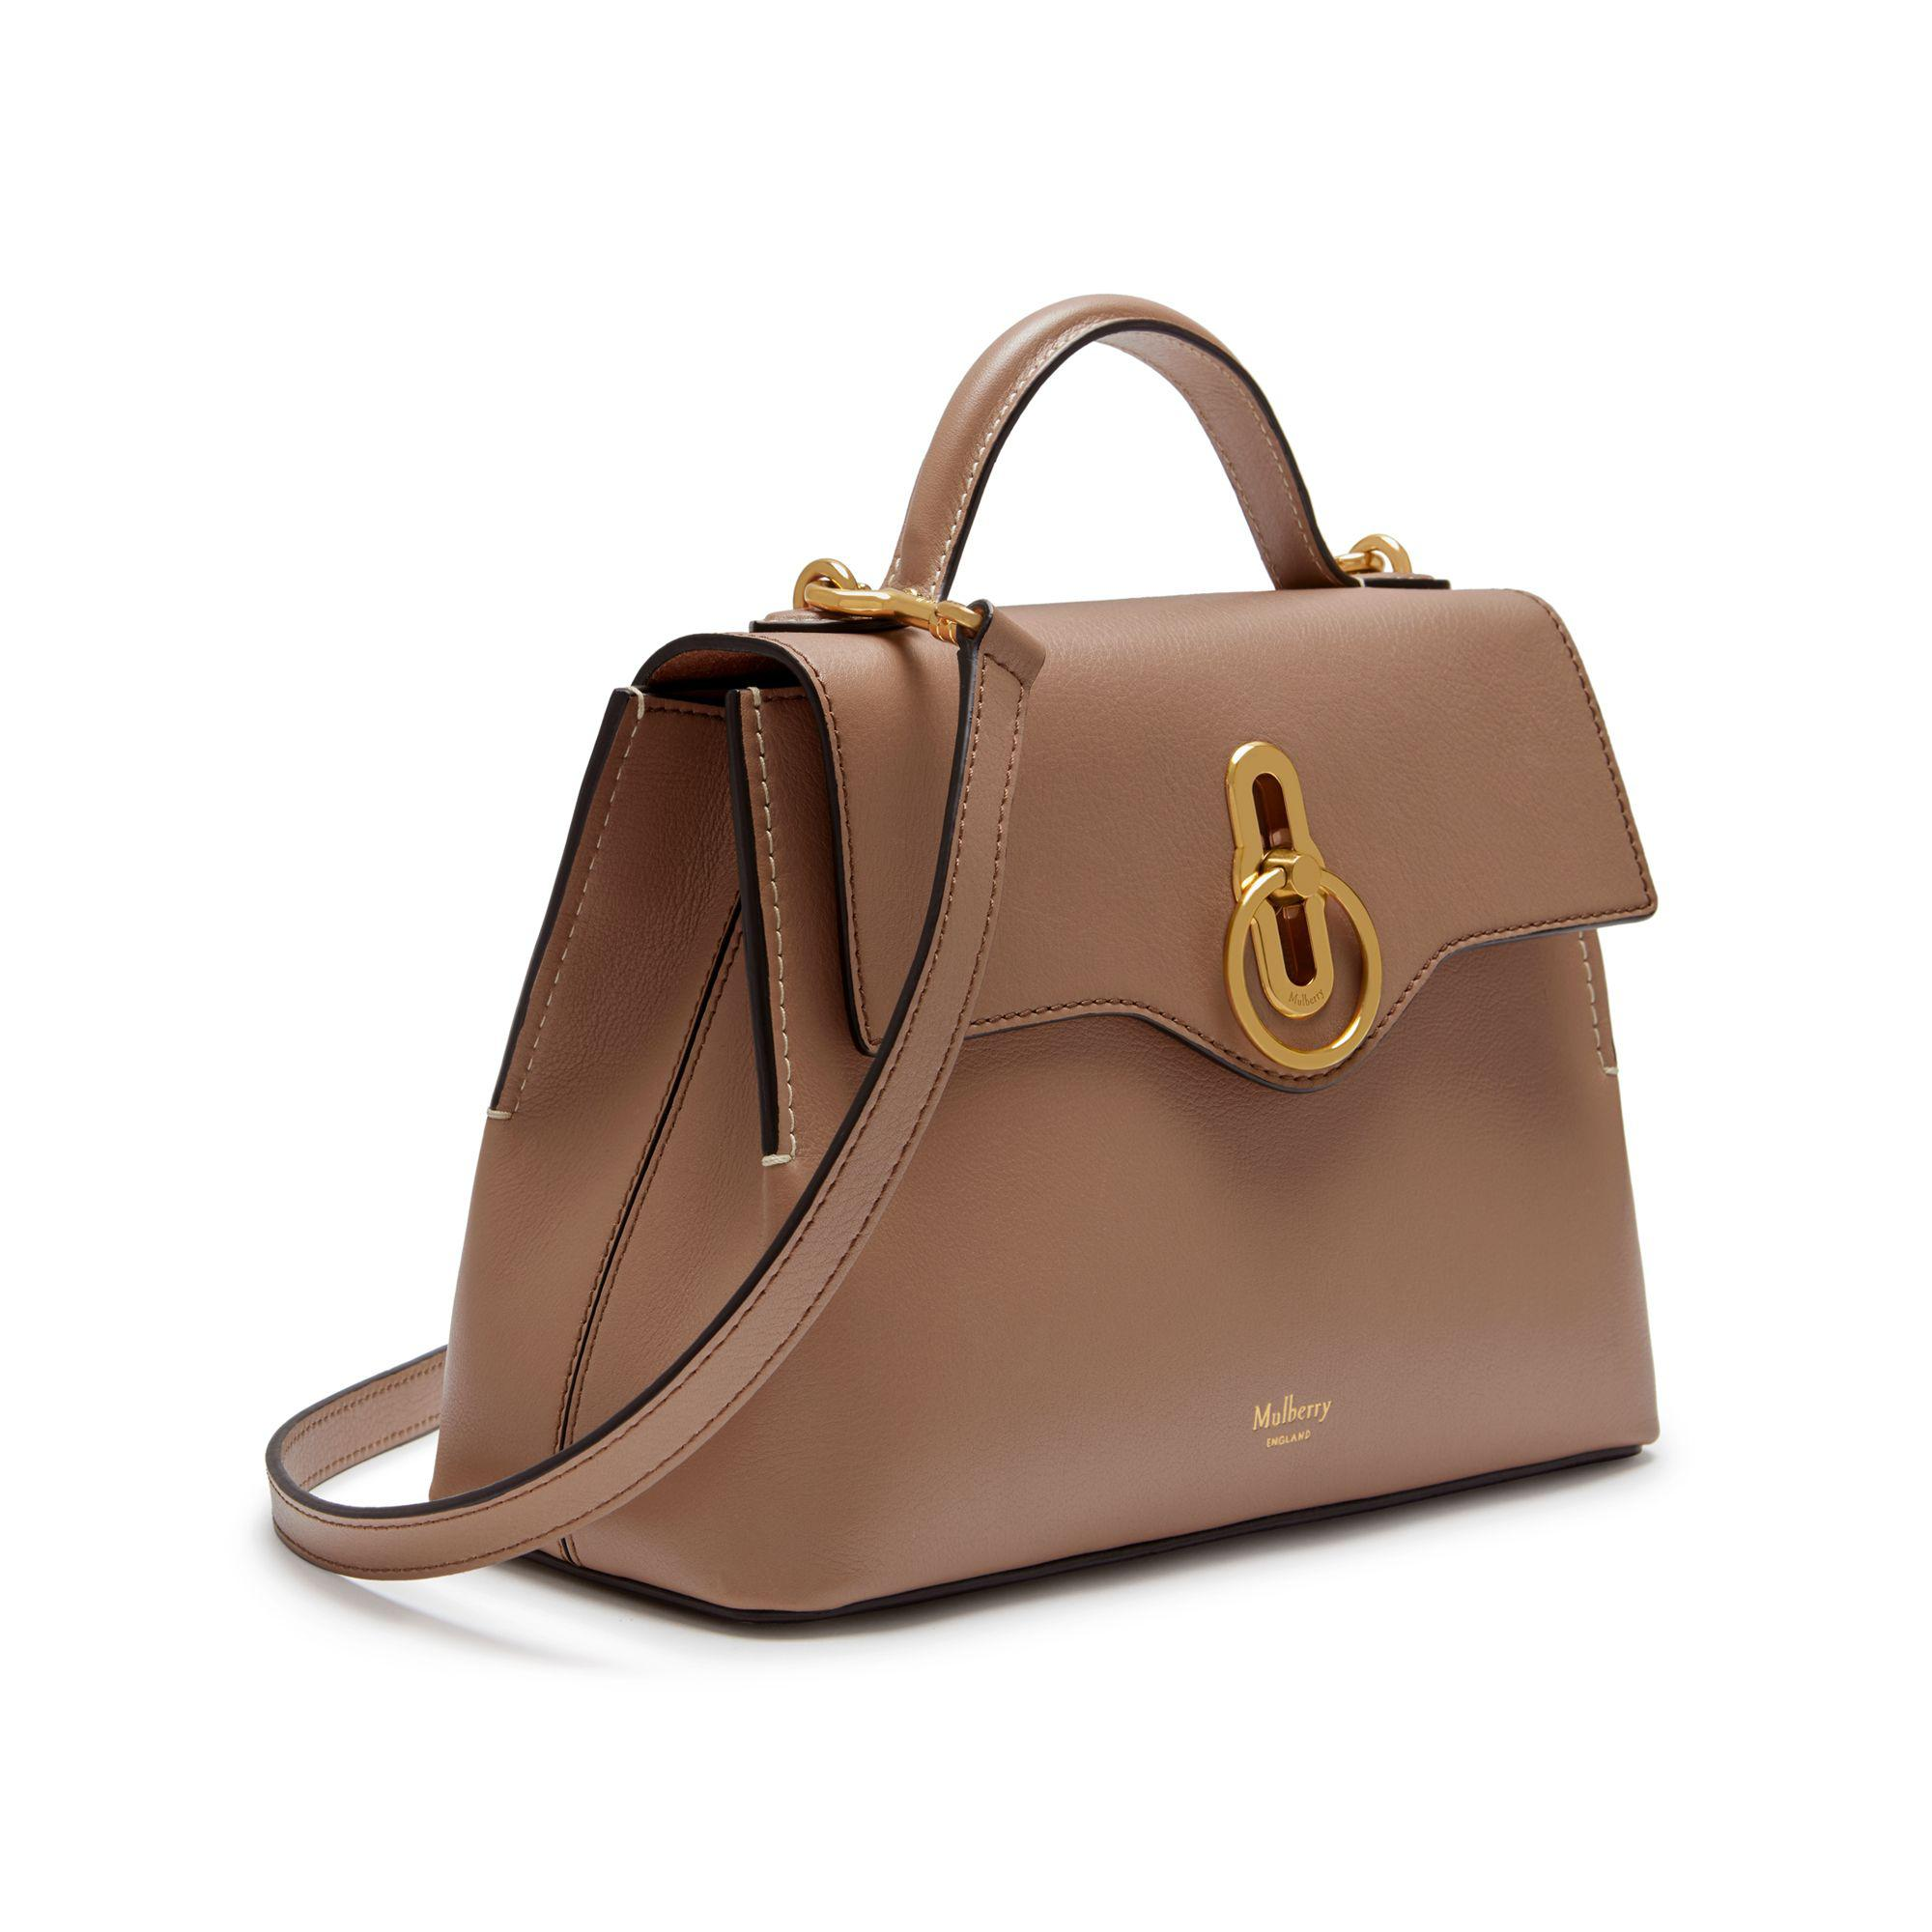 Lyst - Mulberry Mini Seaton in Brown 1d1ddc3a30c69